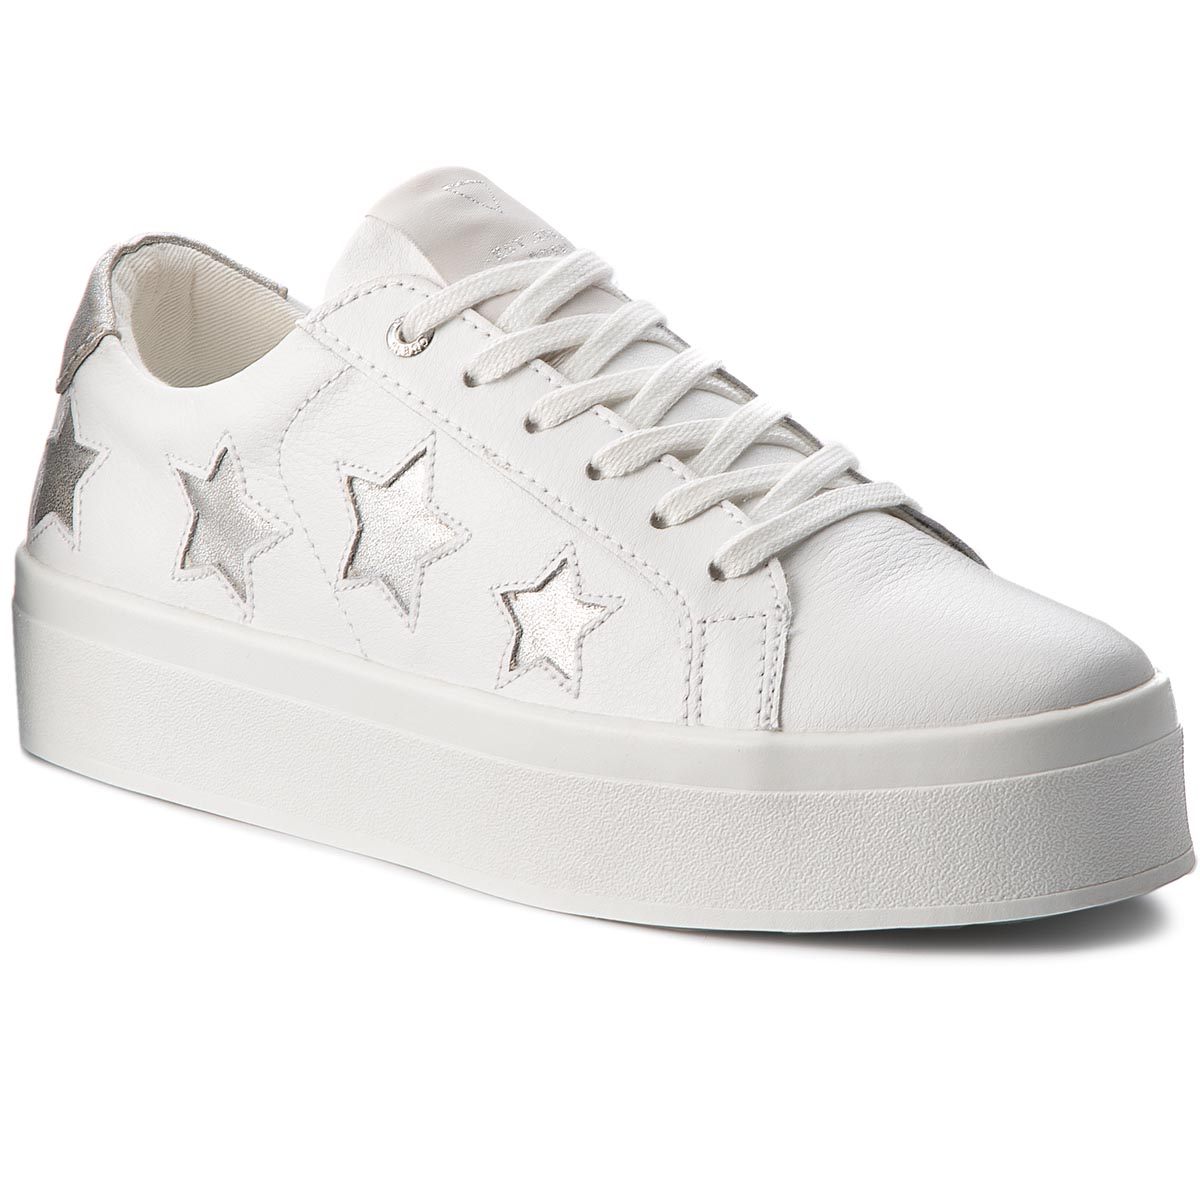 Sneakers GUESS - FLFHS3 LEA12 WHISI